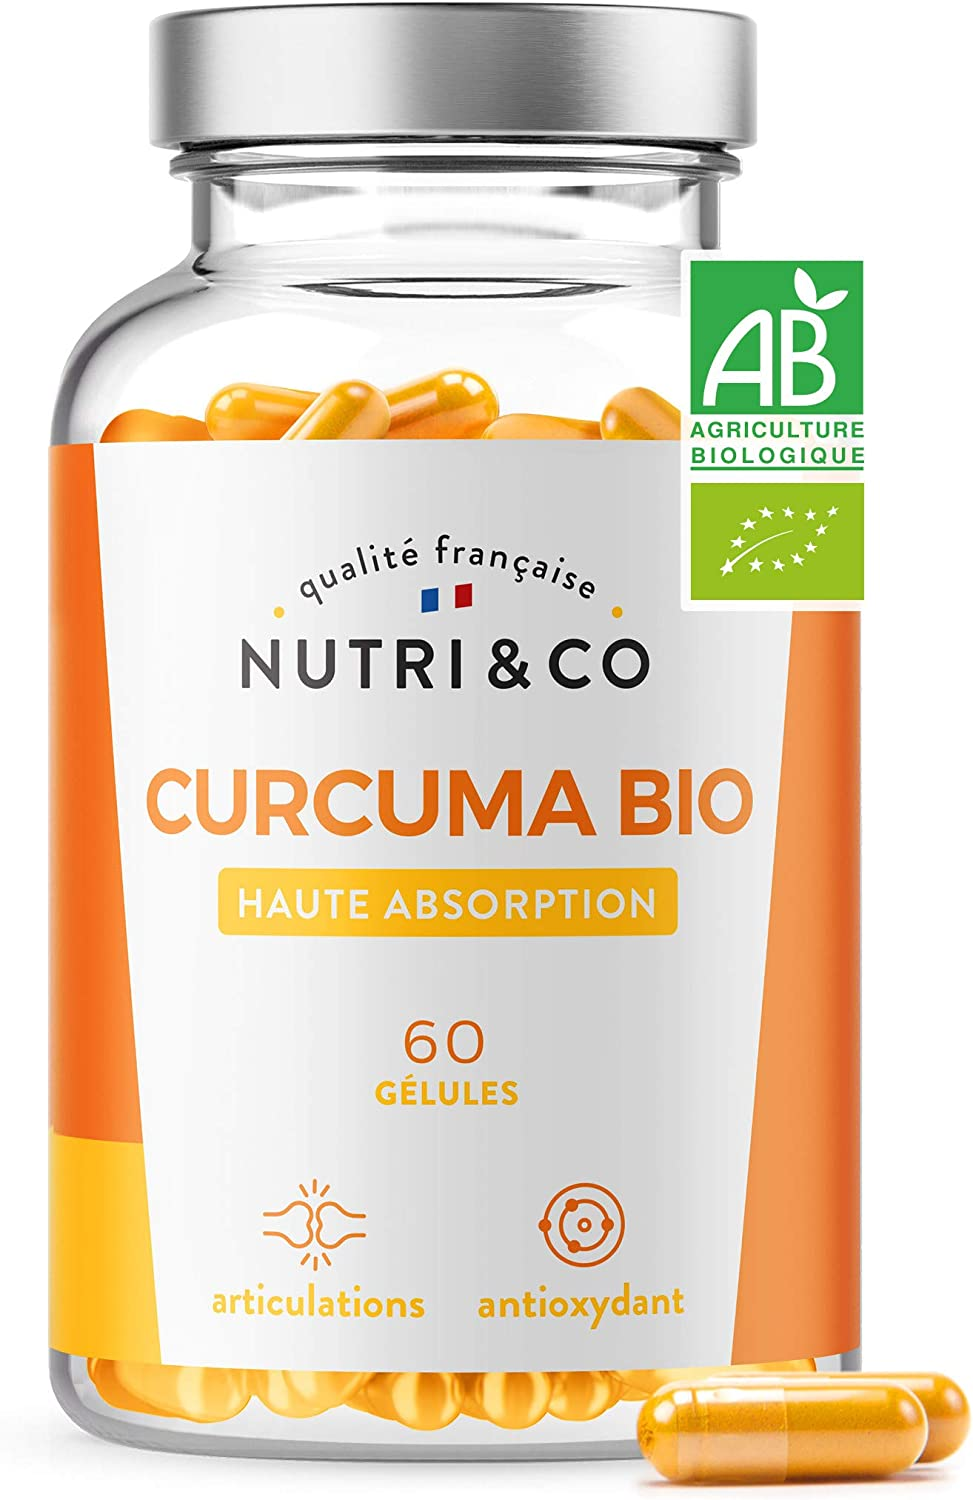 60 gélules de curcuma bio (et poivre) made in France